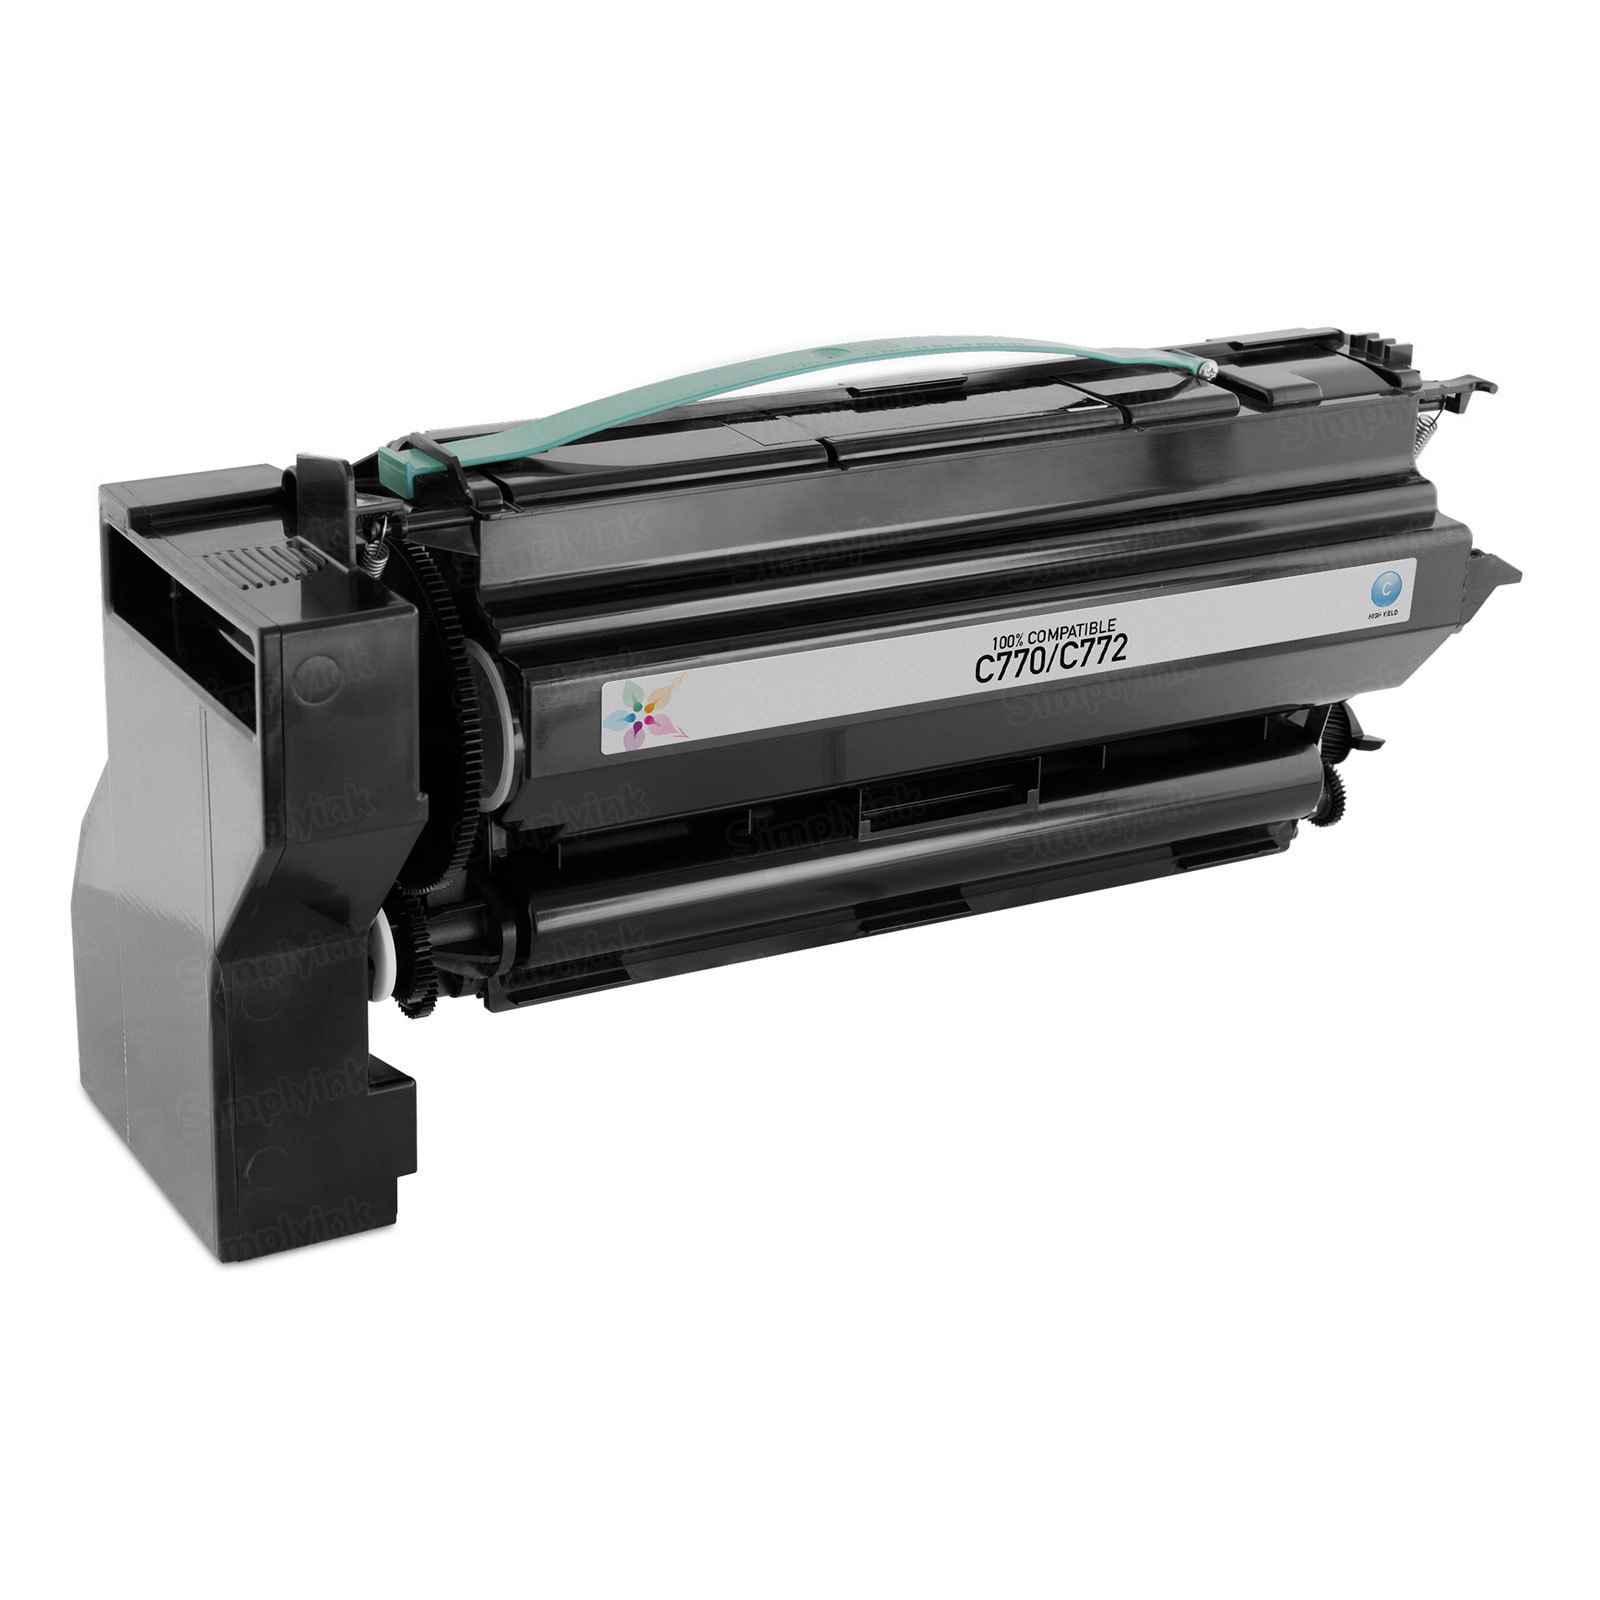 Remanufactured C7702CH HY Cyan Toner Cartridge for Lexmark C770/C772